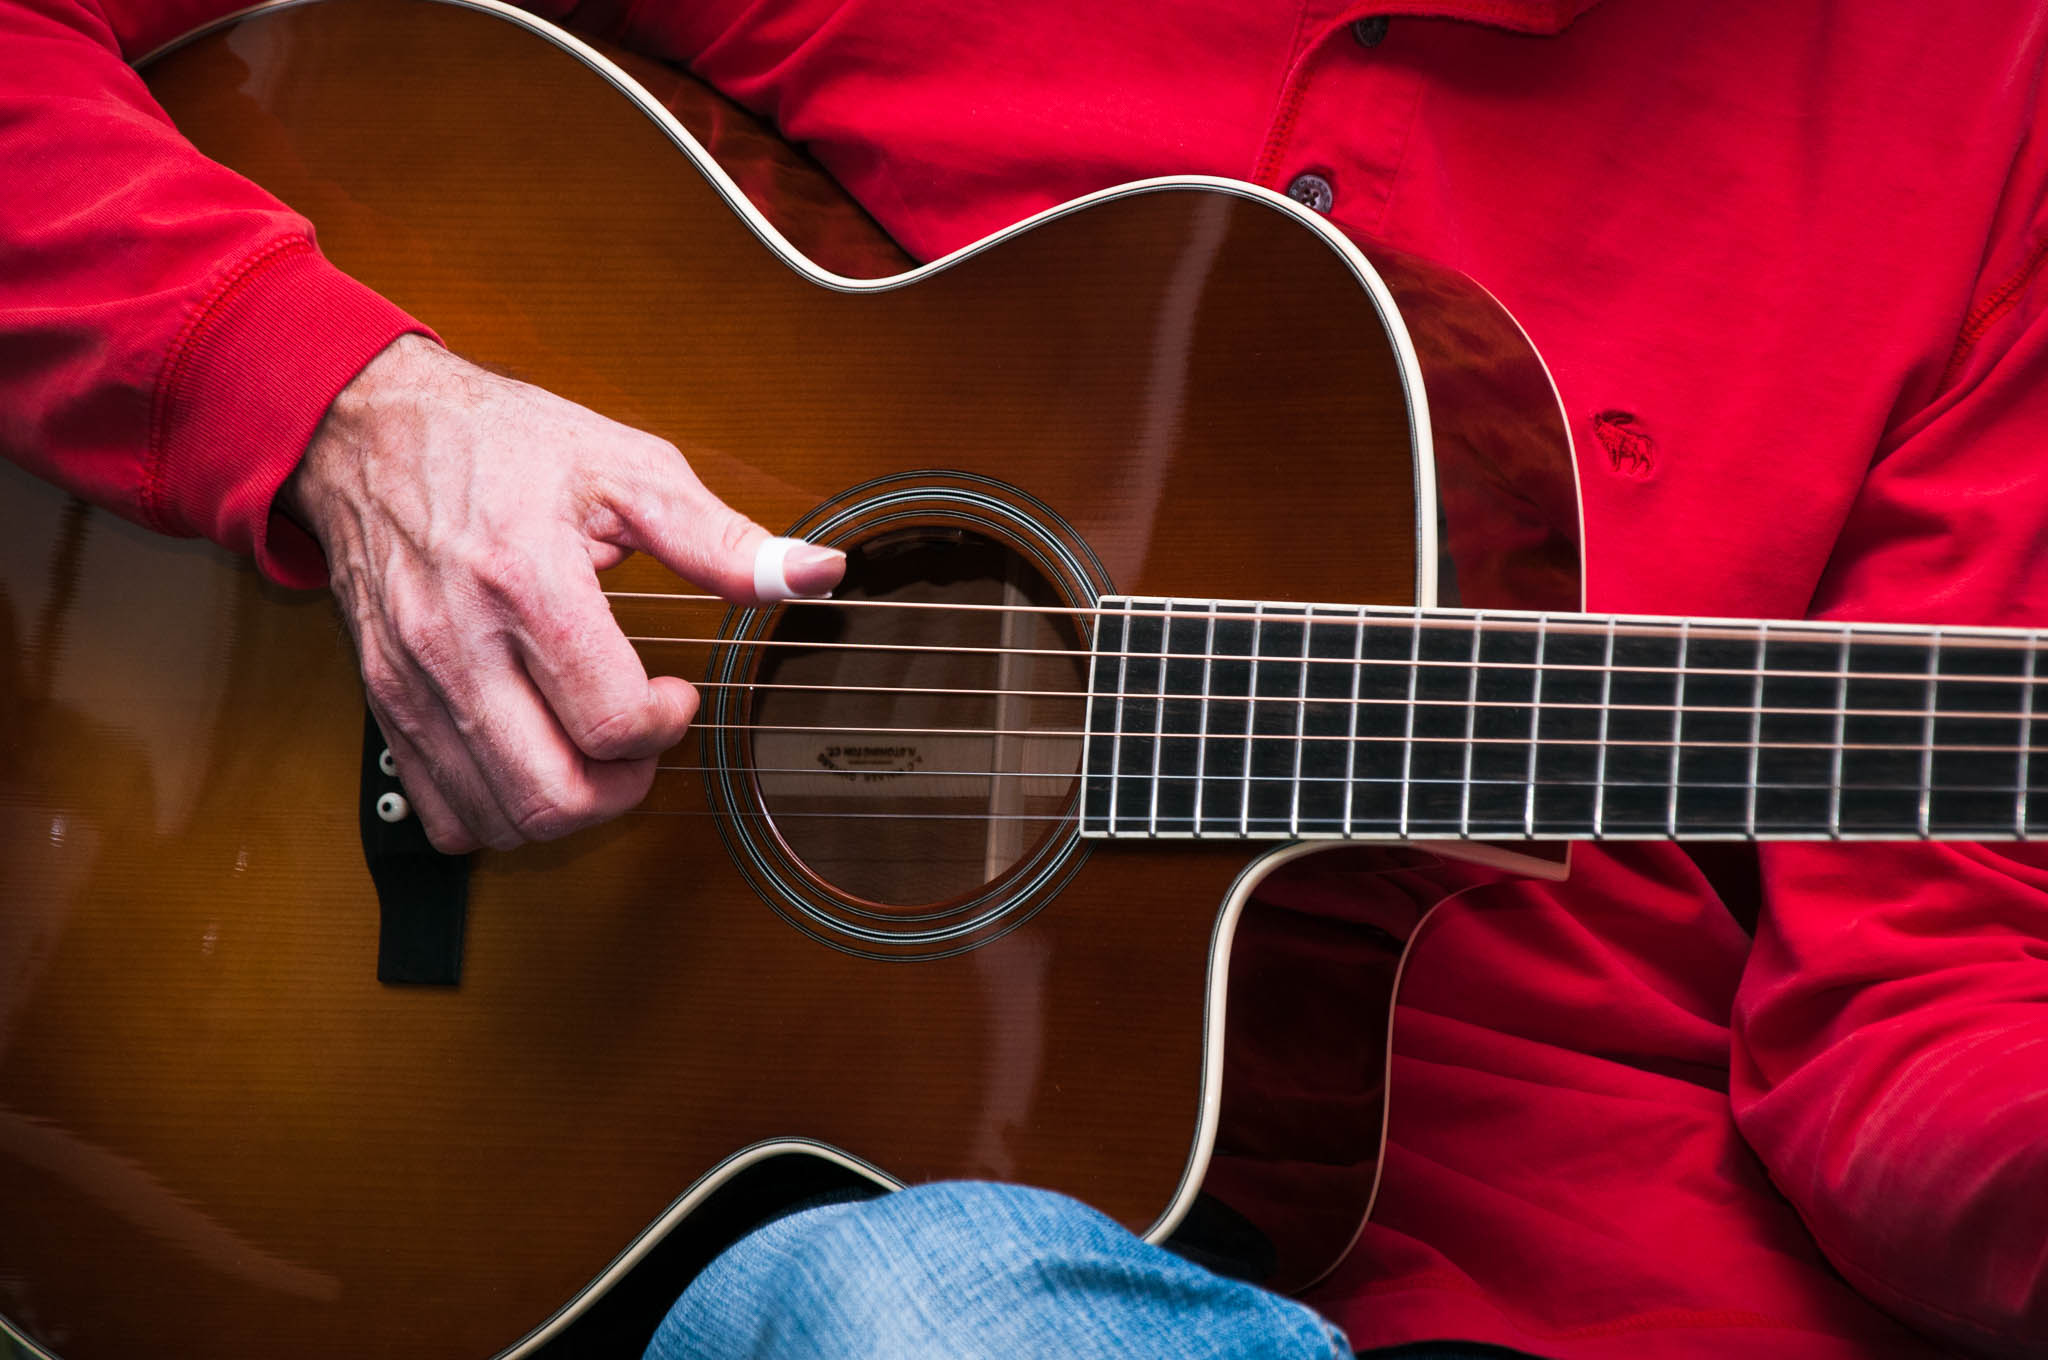 Close-up of a man playing an acoustic guitar with a cutaway and a sunburst top.